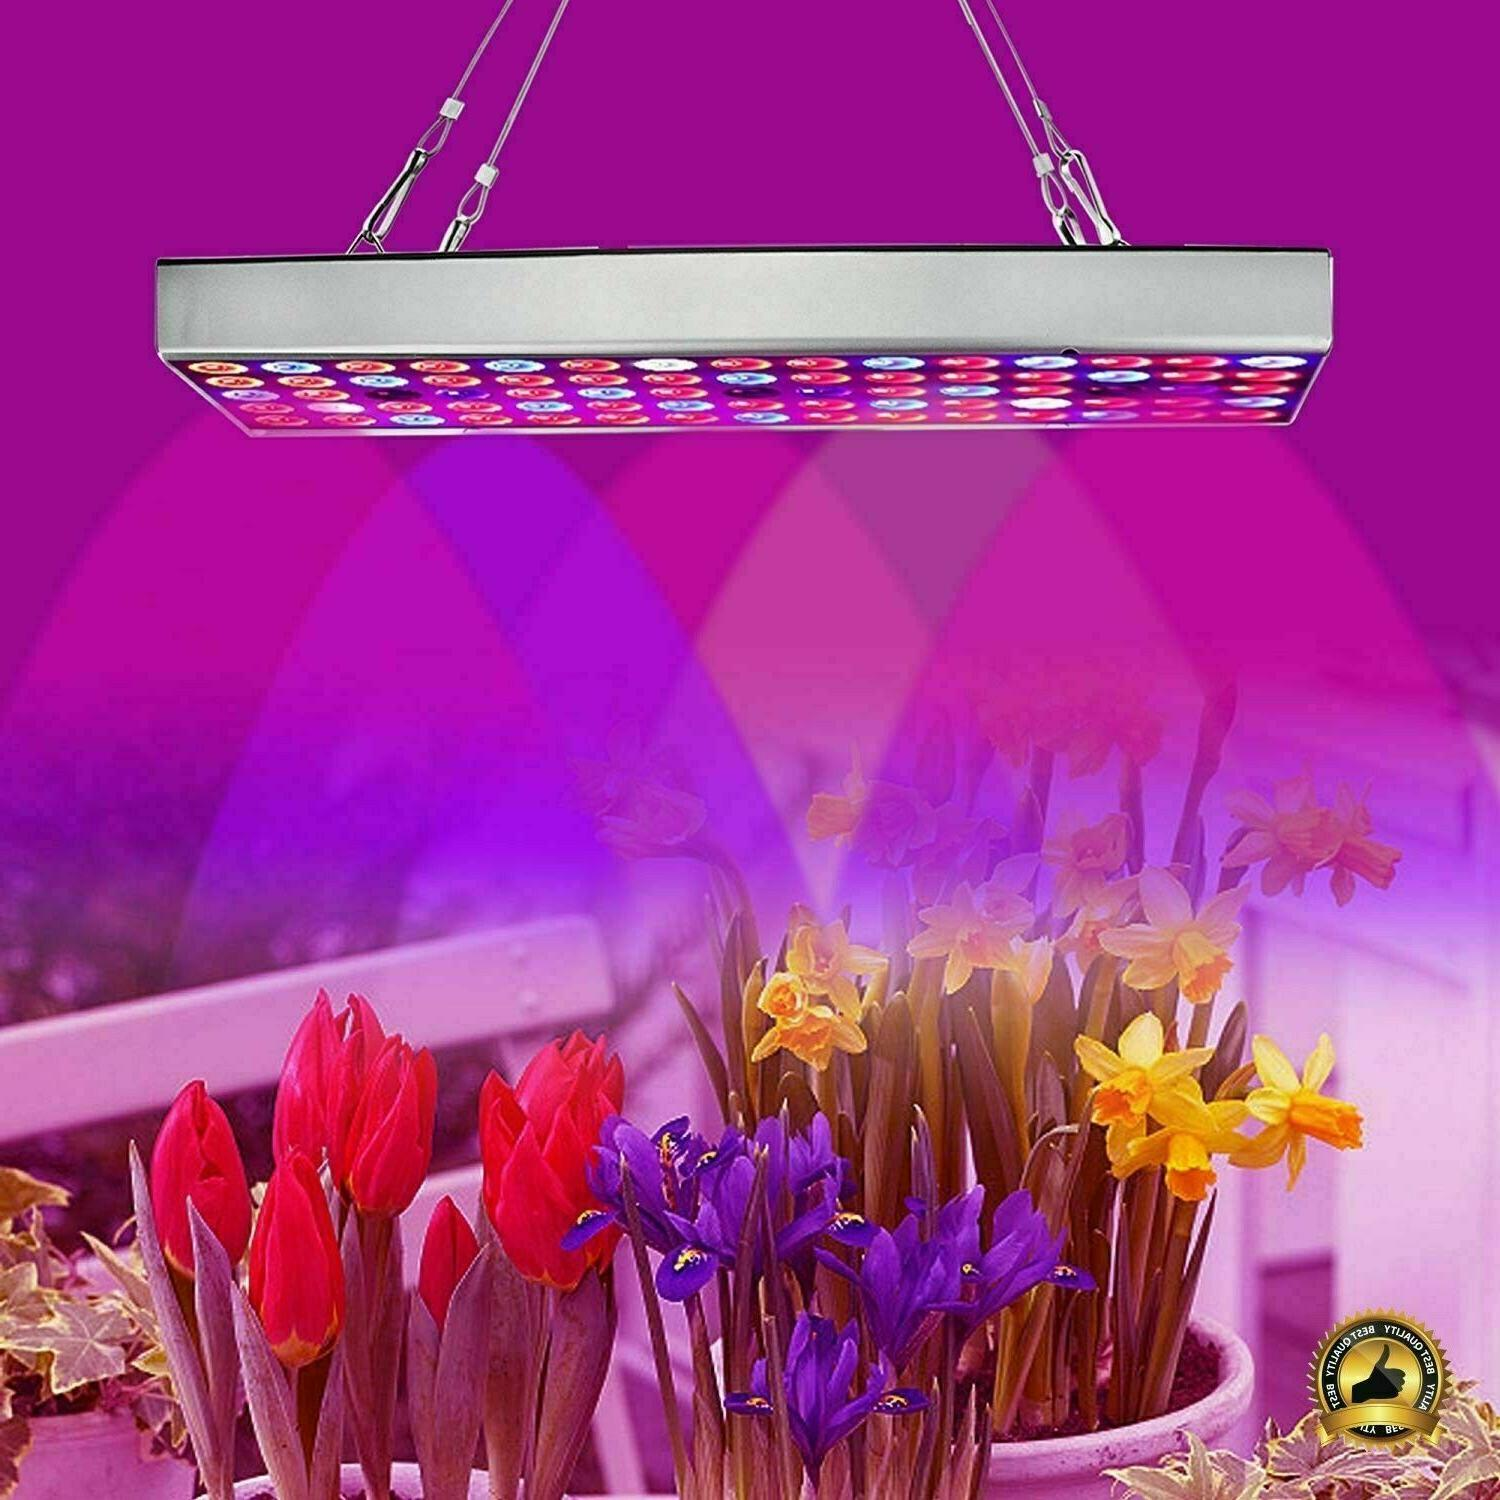 Weed Grow Light Full Spectrum LED Lights Marijuana Panel Can